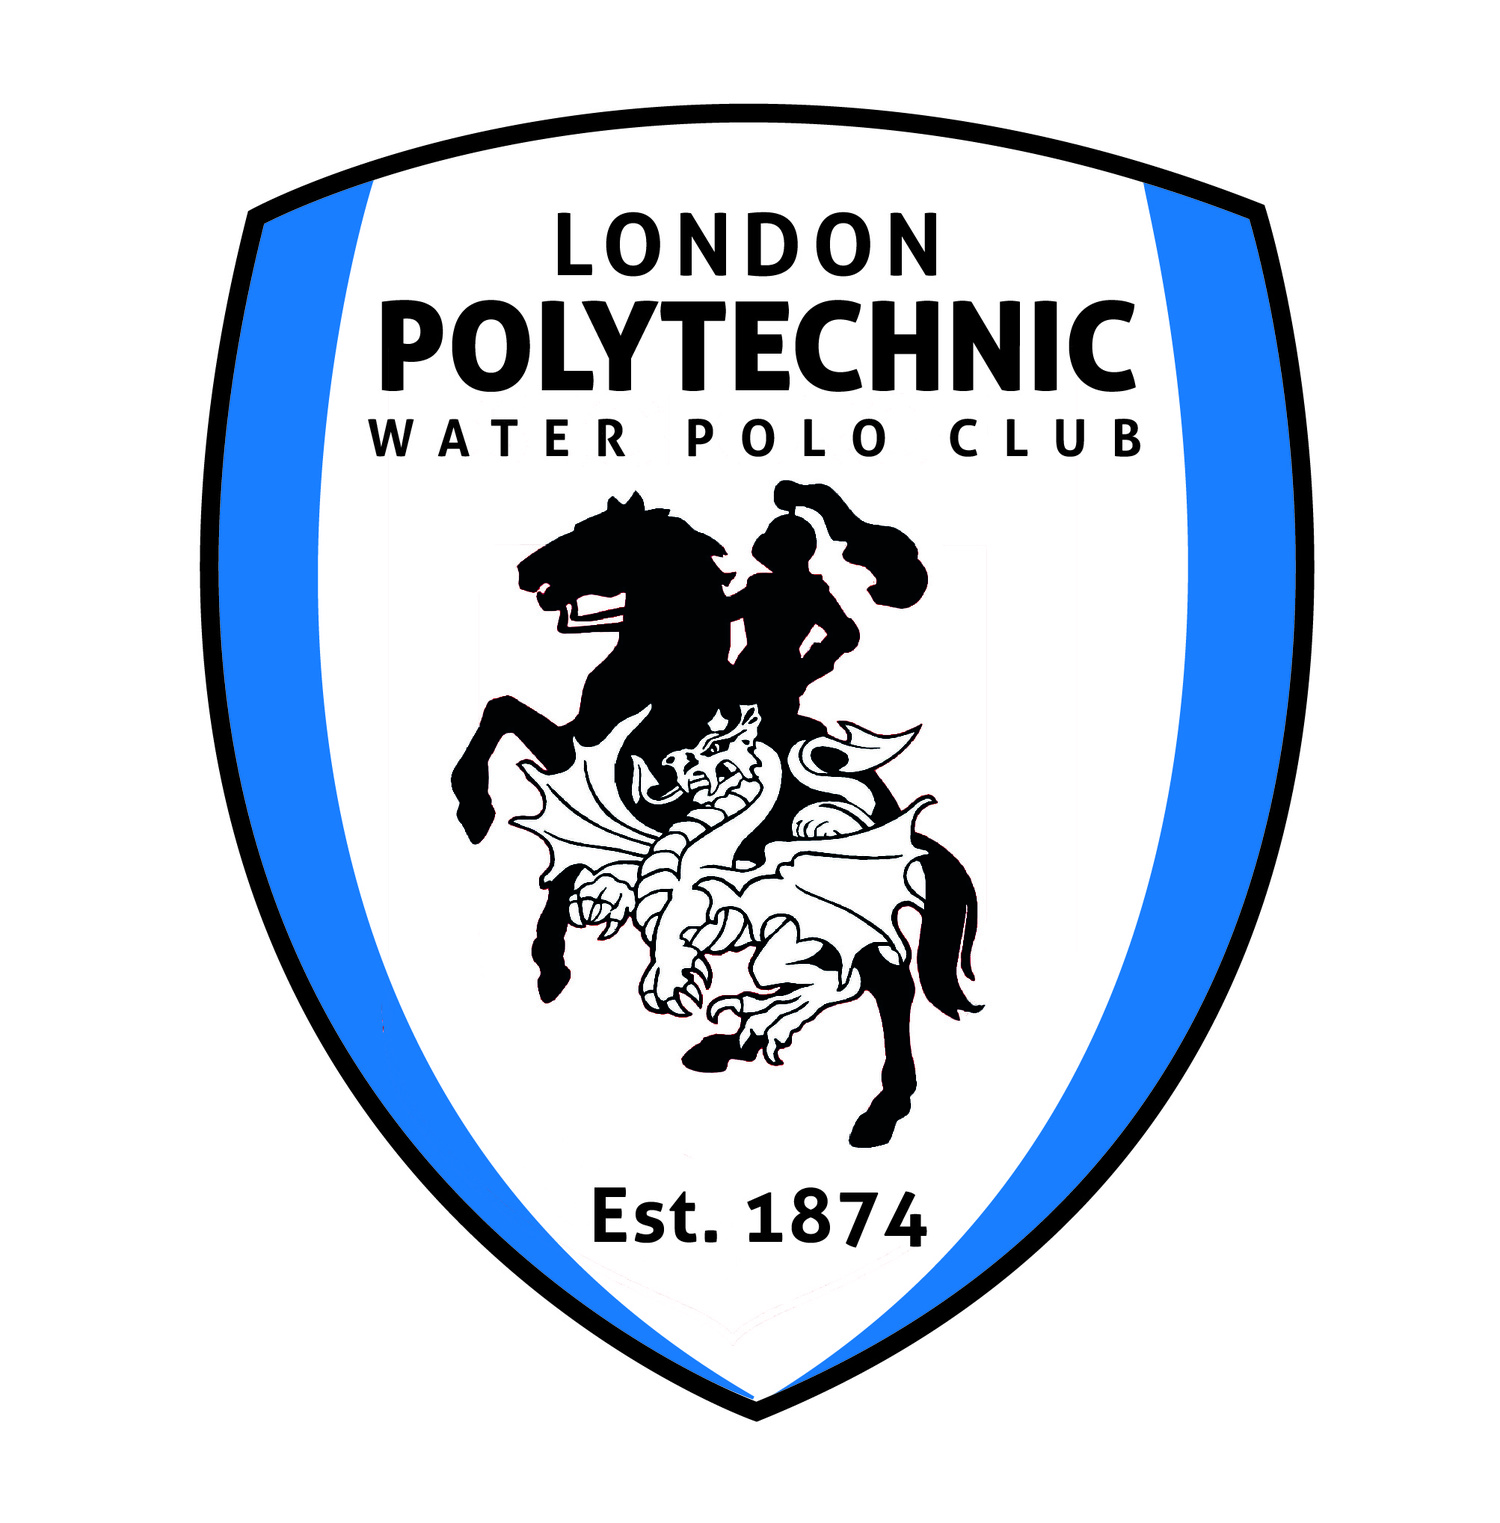 POLYTECHNIC WATER POLO CLUB